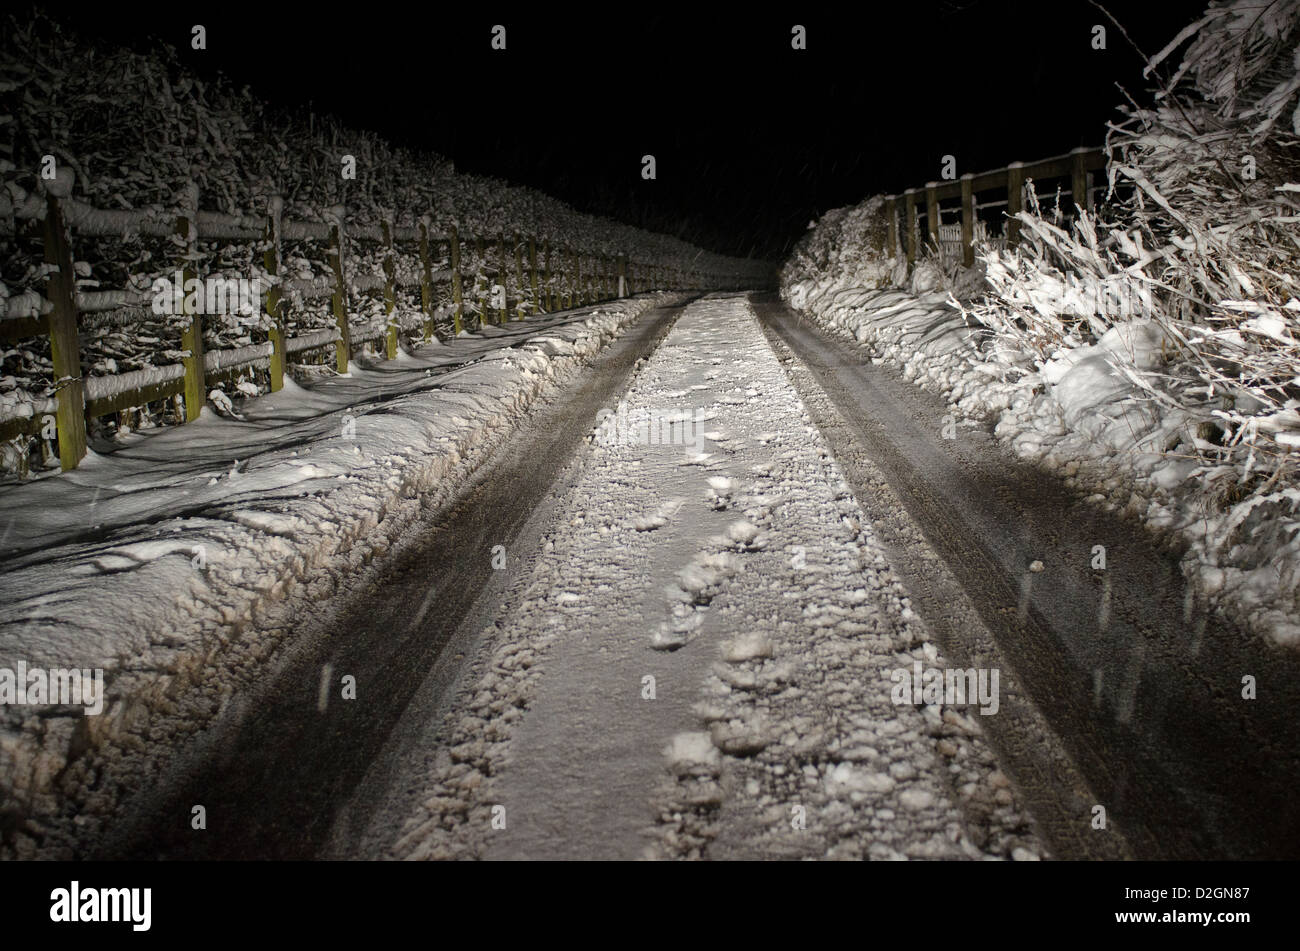 Narrow country road in snow at night - Stock Image